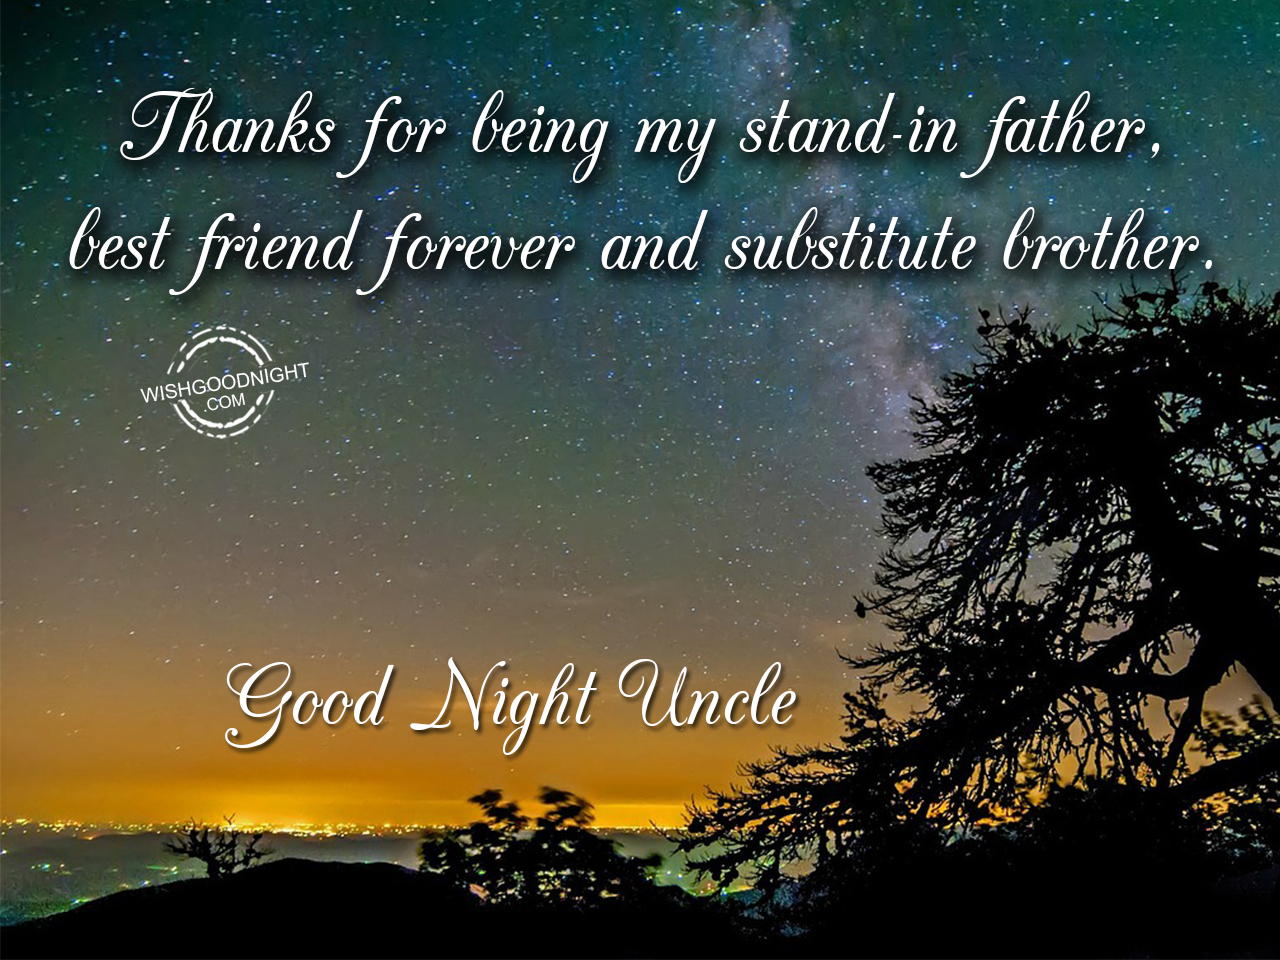 Good Night Wishes For Uncle Good Night Pictures Wishgoodnight